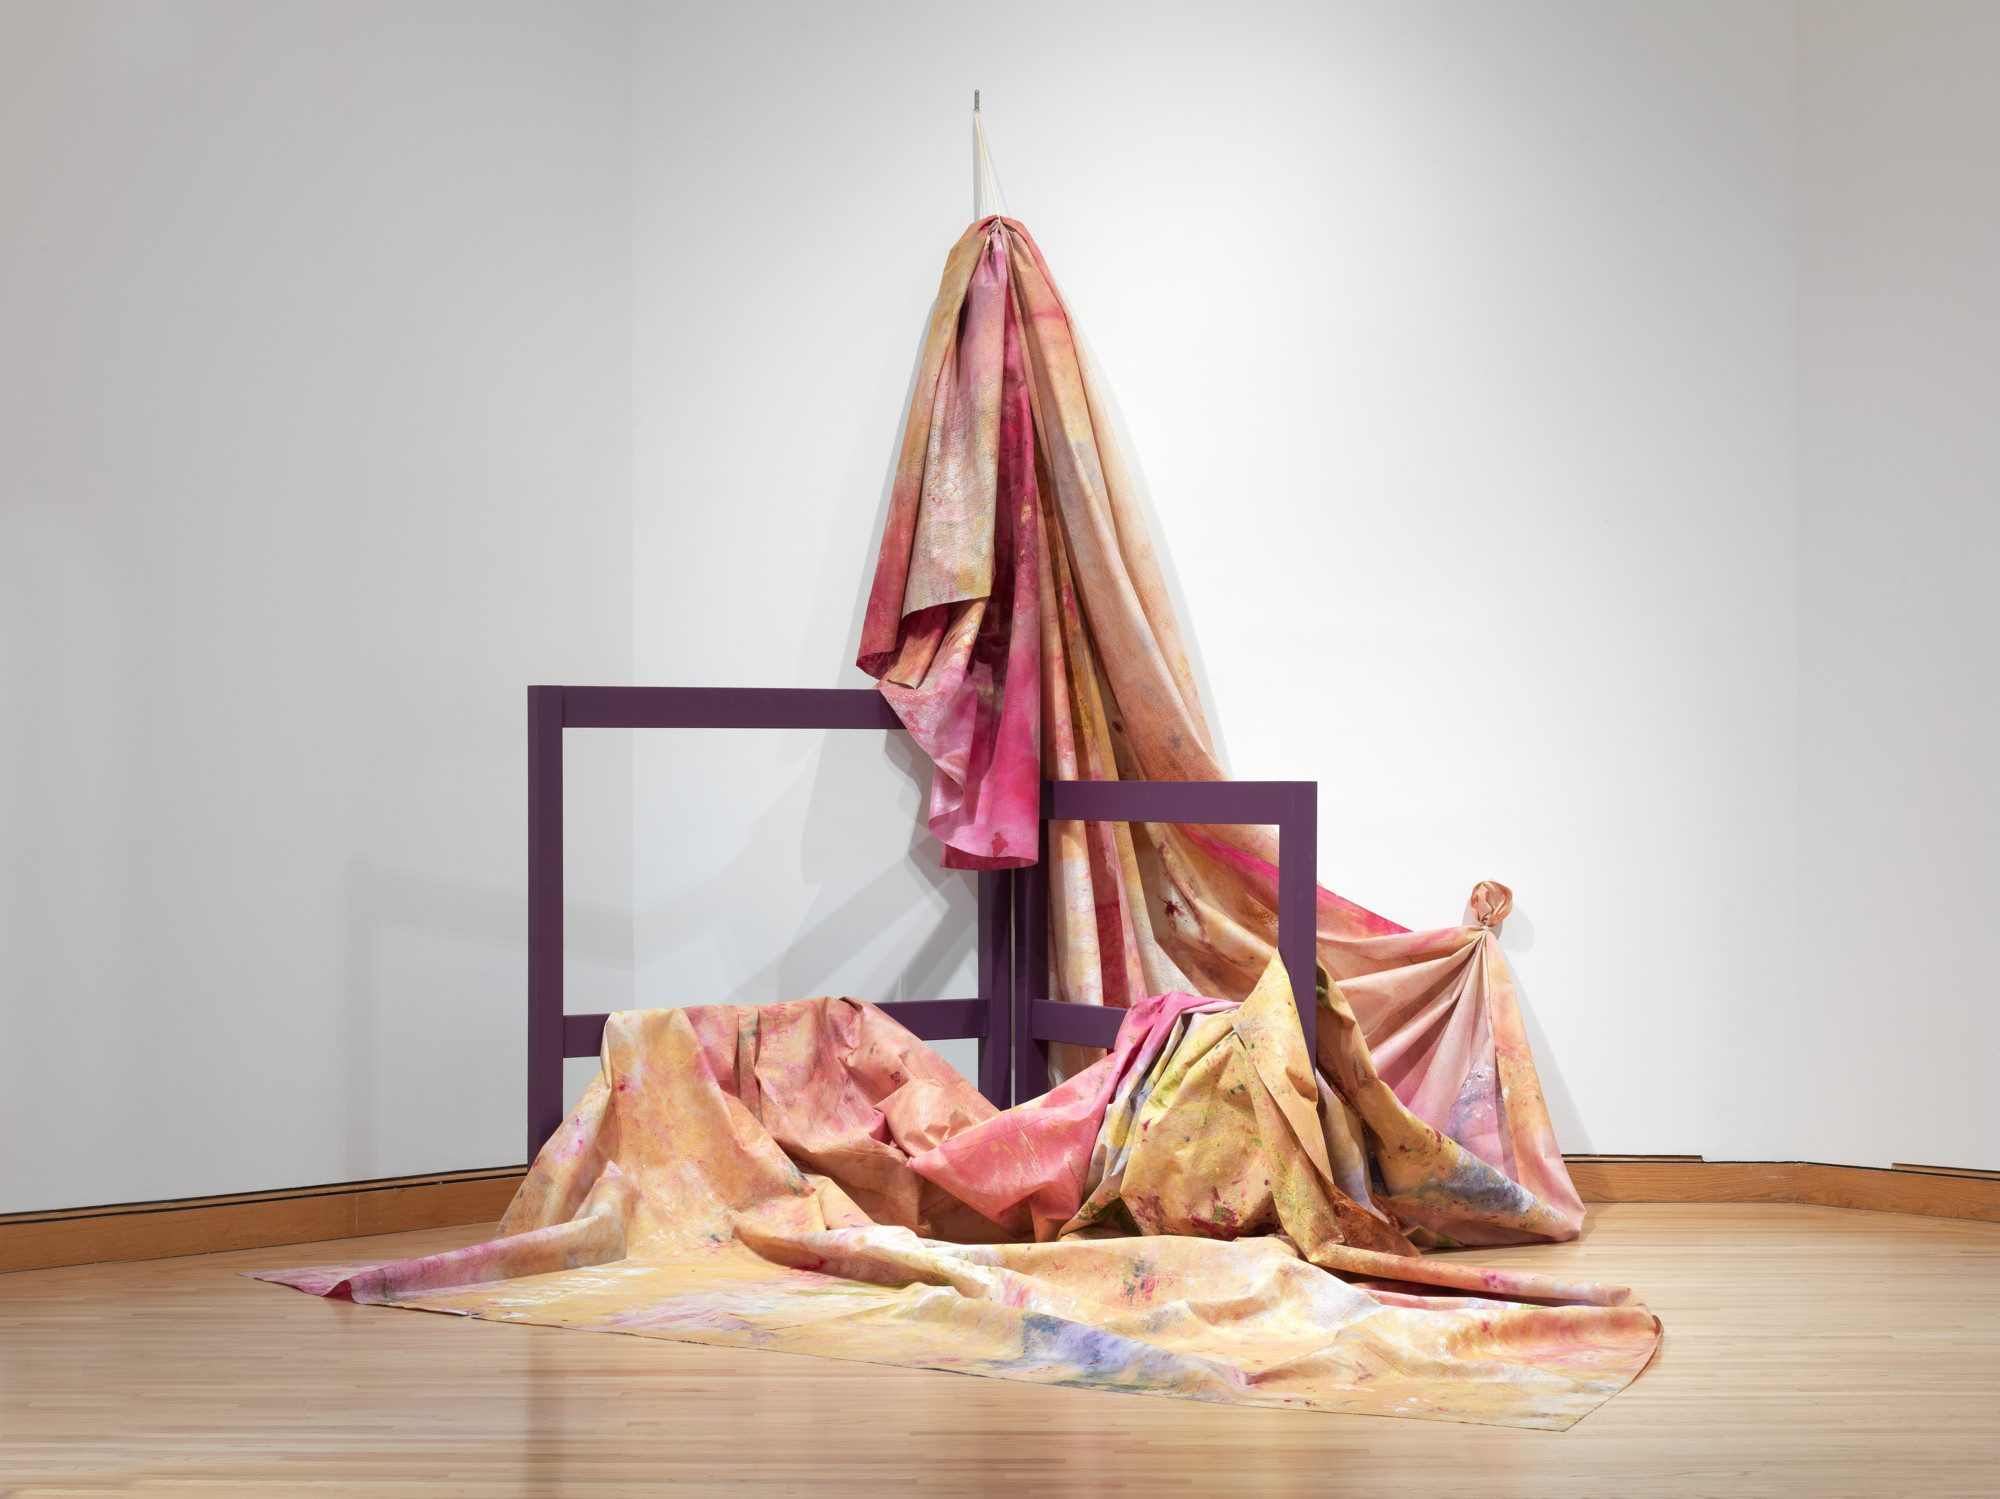 Sam Gilliam (American, b. 1933 ), Situation VI–Pisces 4, c. 1972. Museum purchase, Otis Family Acquisition Trust and Kathryn Hurd Fund. Photo by Jim Gipe photo / Pivot Media.